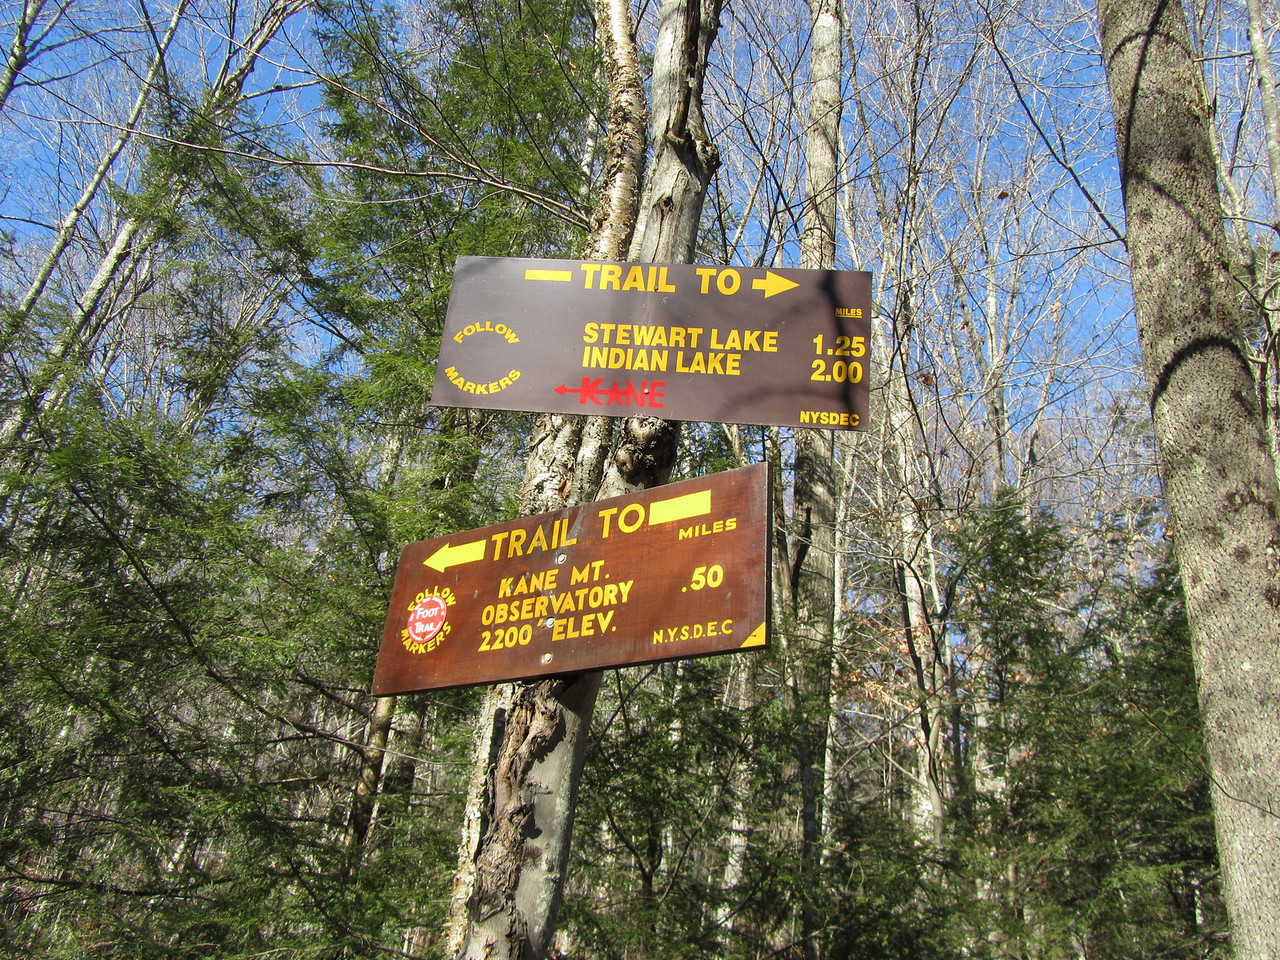 The trailhead. Fire tower was a quick jaunt. Might need to bring a dozen leaf worms and a travel rod and walk into Steward or Indian Lake. Will be a spring time expedition.